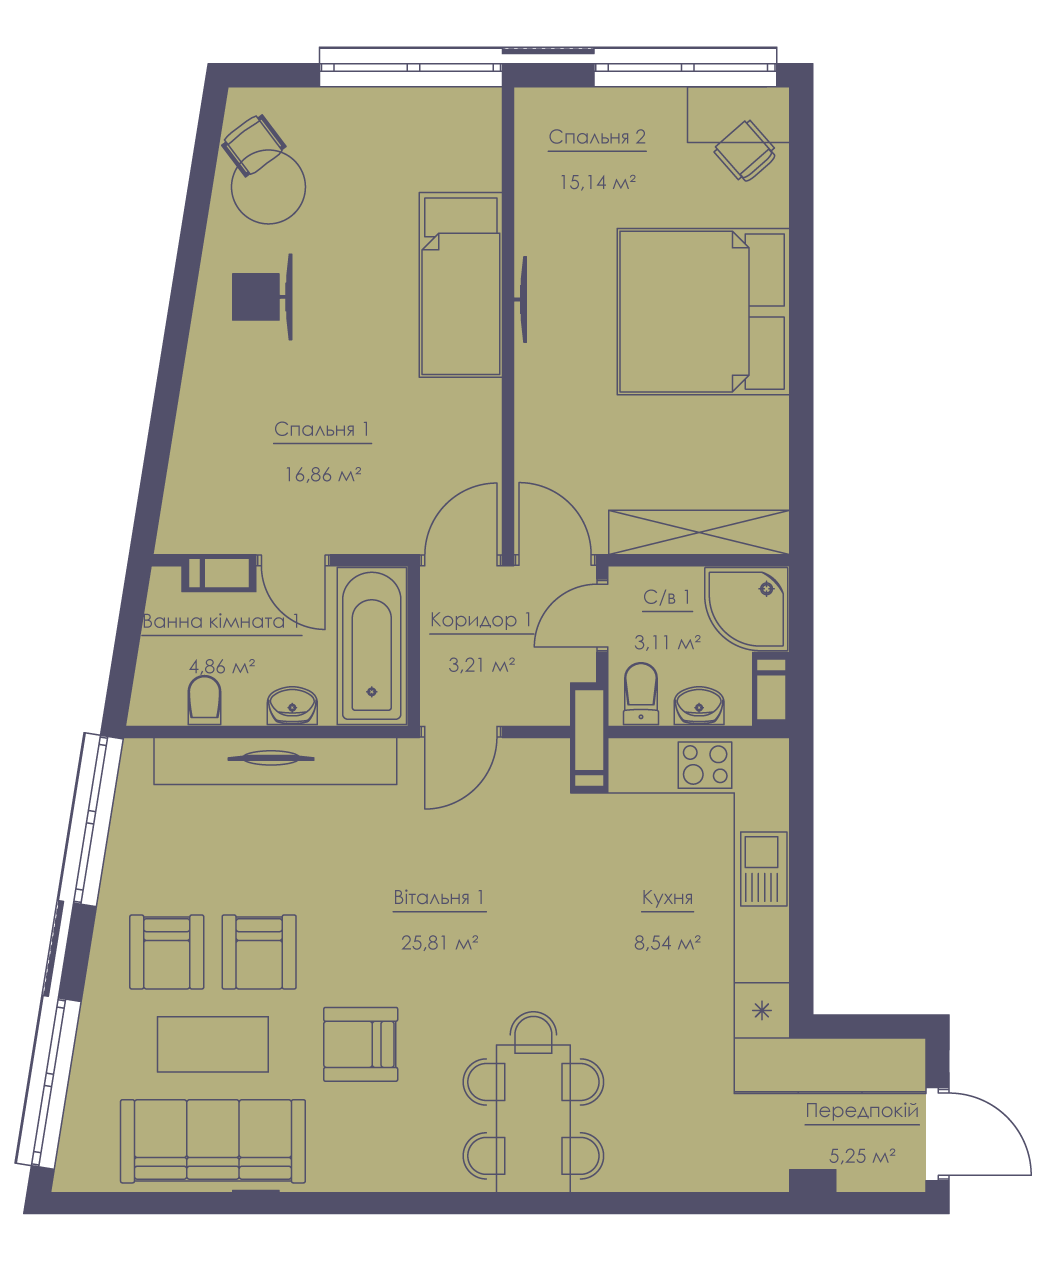 Apartment layout KV_129_3.3n_1_1_7-1